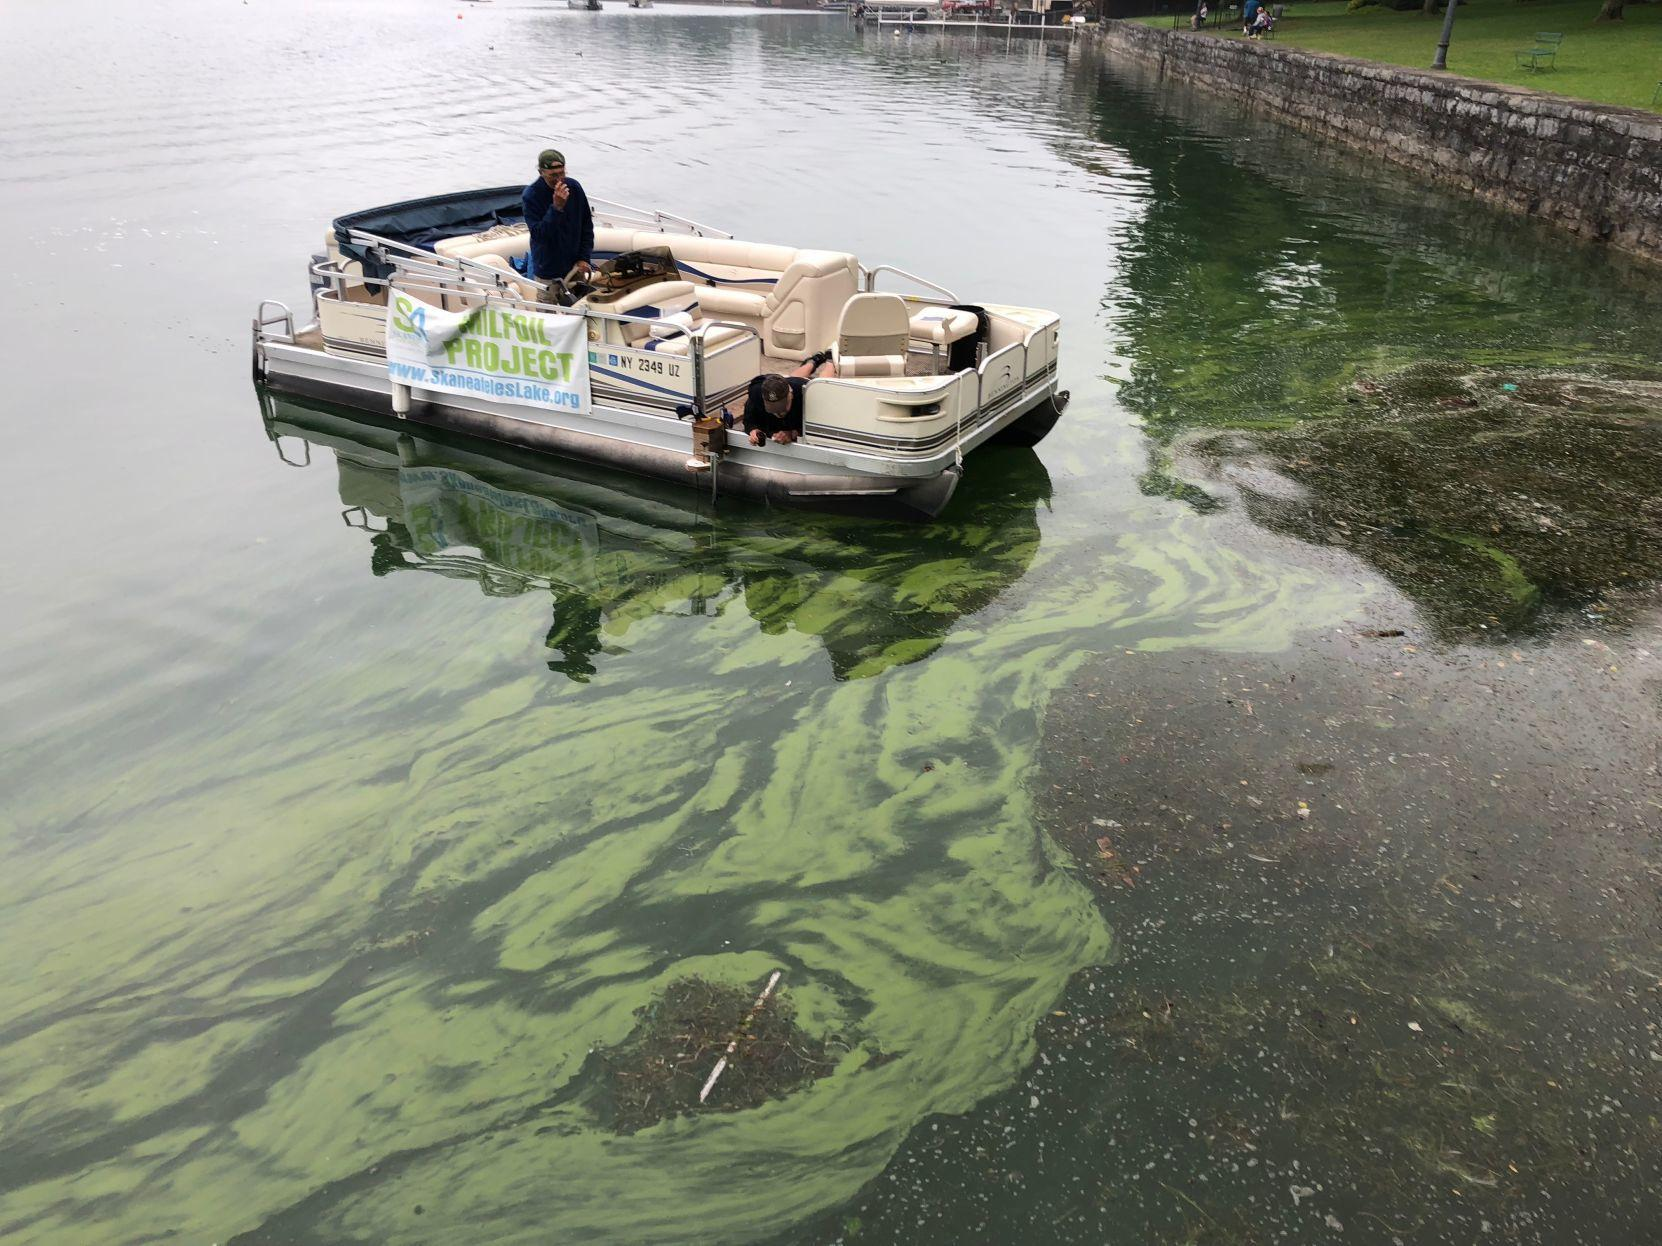 Harmful algal bloom reported on Skaneateles Lake